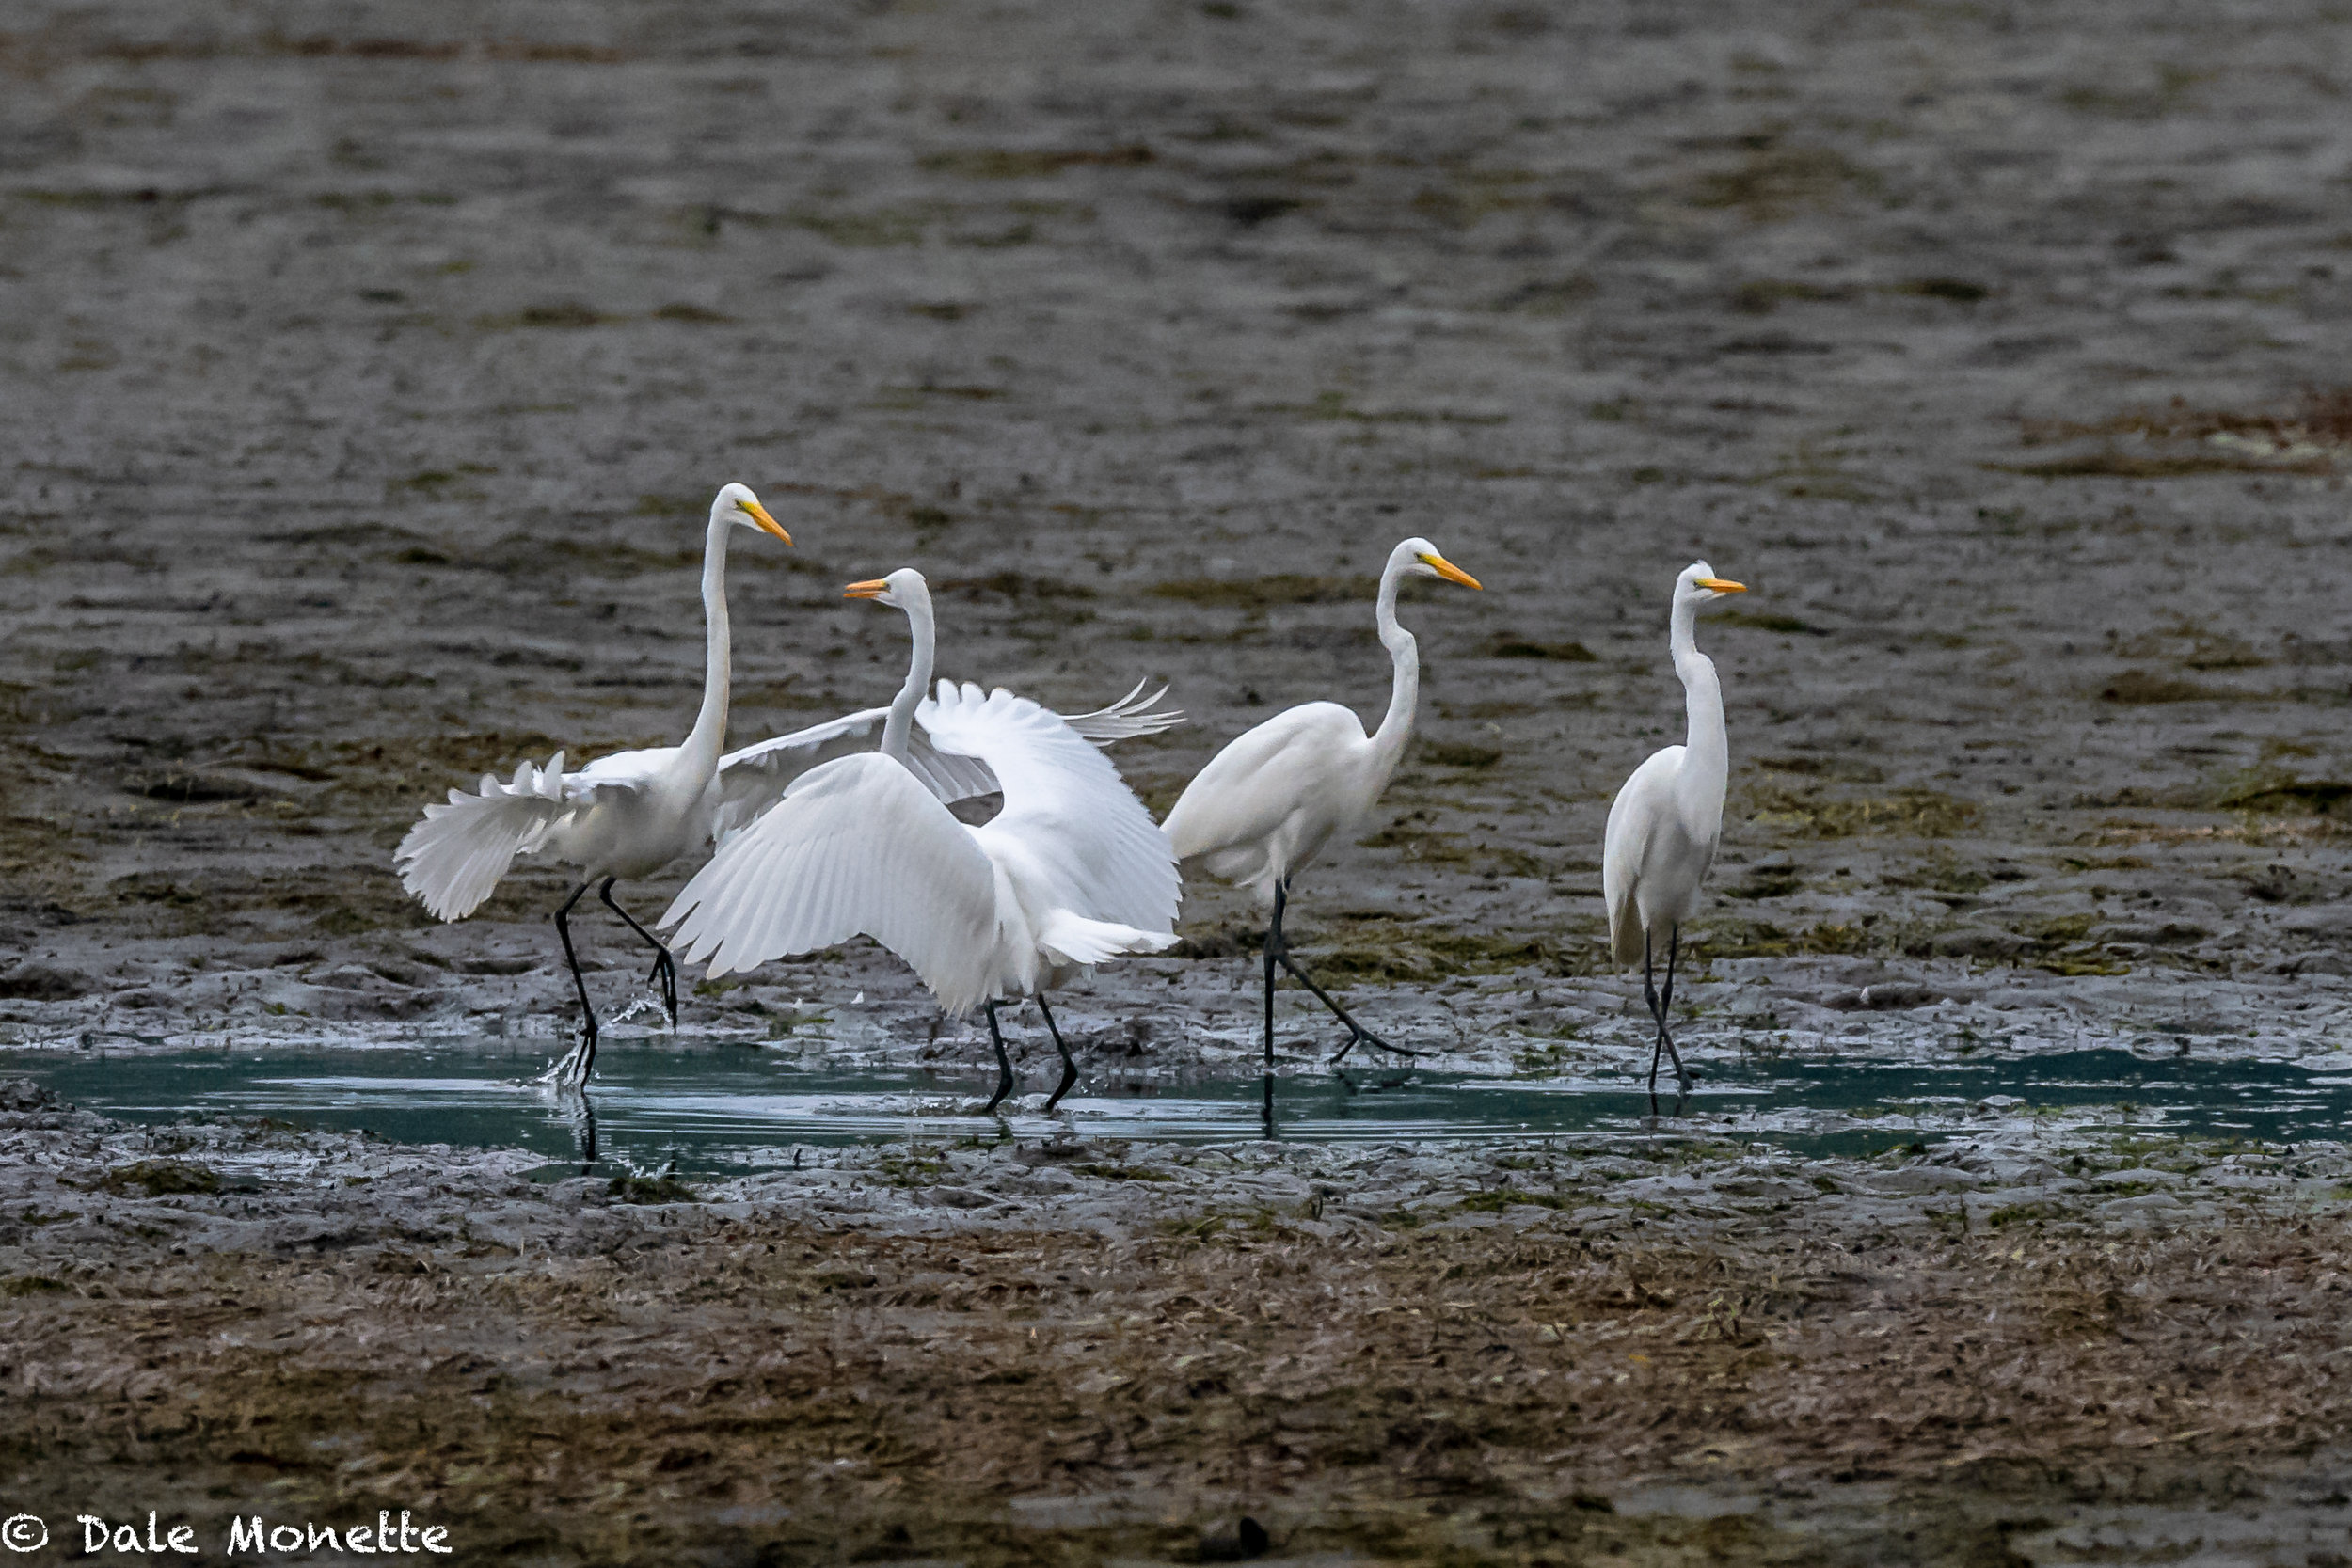 These 4 great egrets were all fishing in this small pond that was not far from the CT River.